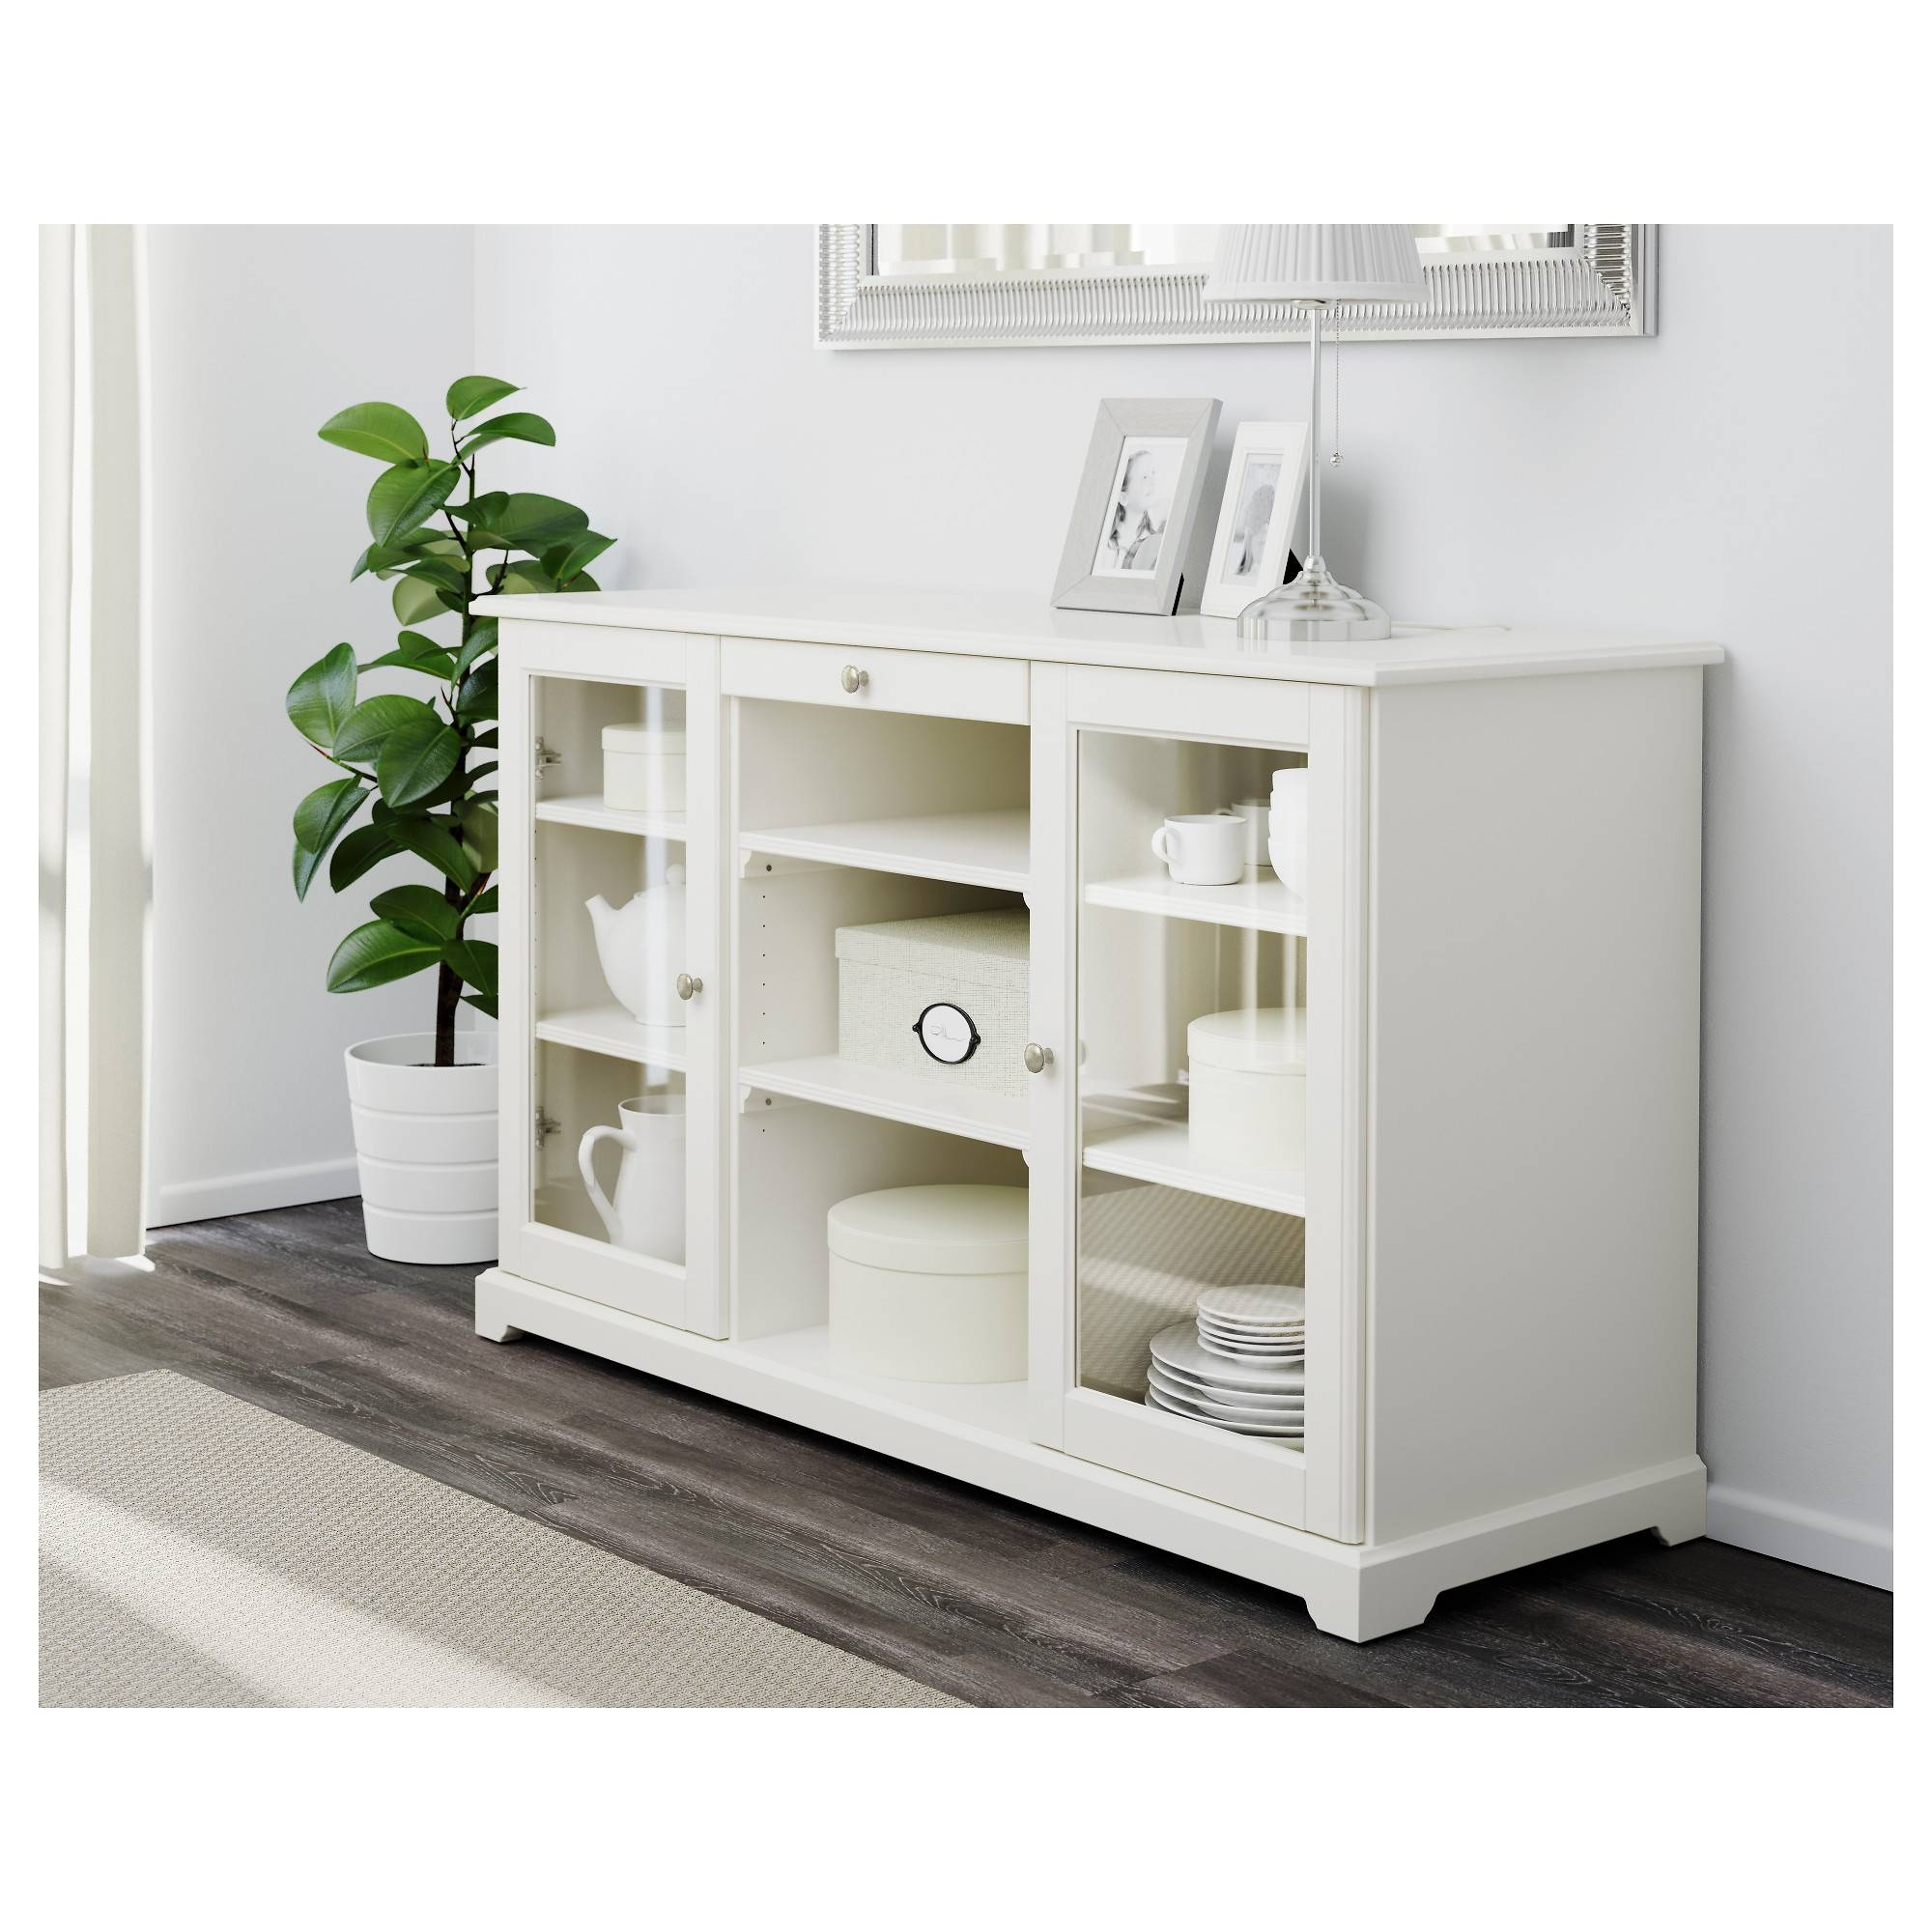 Liatorp Sideboard - White - Ikea intended for Cheap White Sideboards (Image 7 of 30)